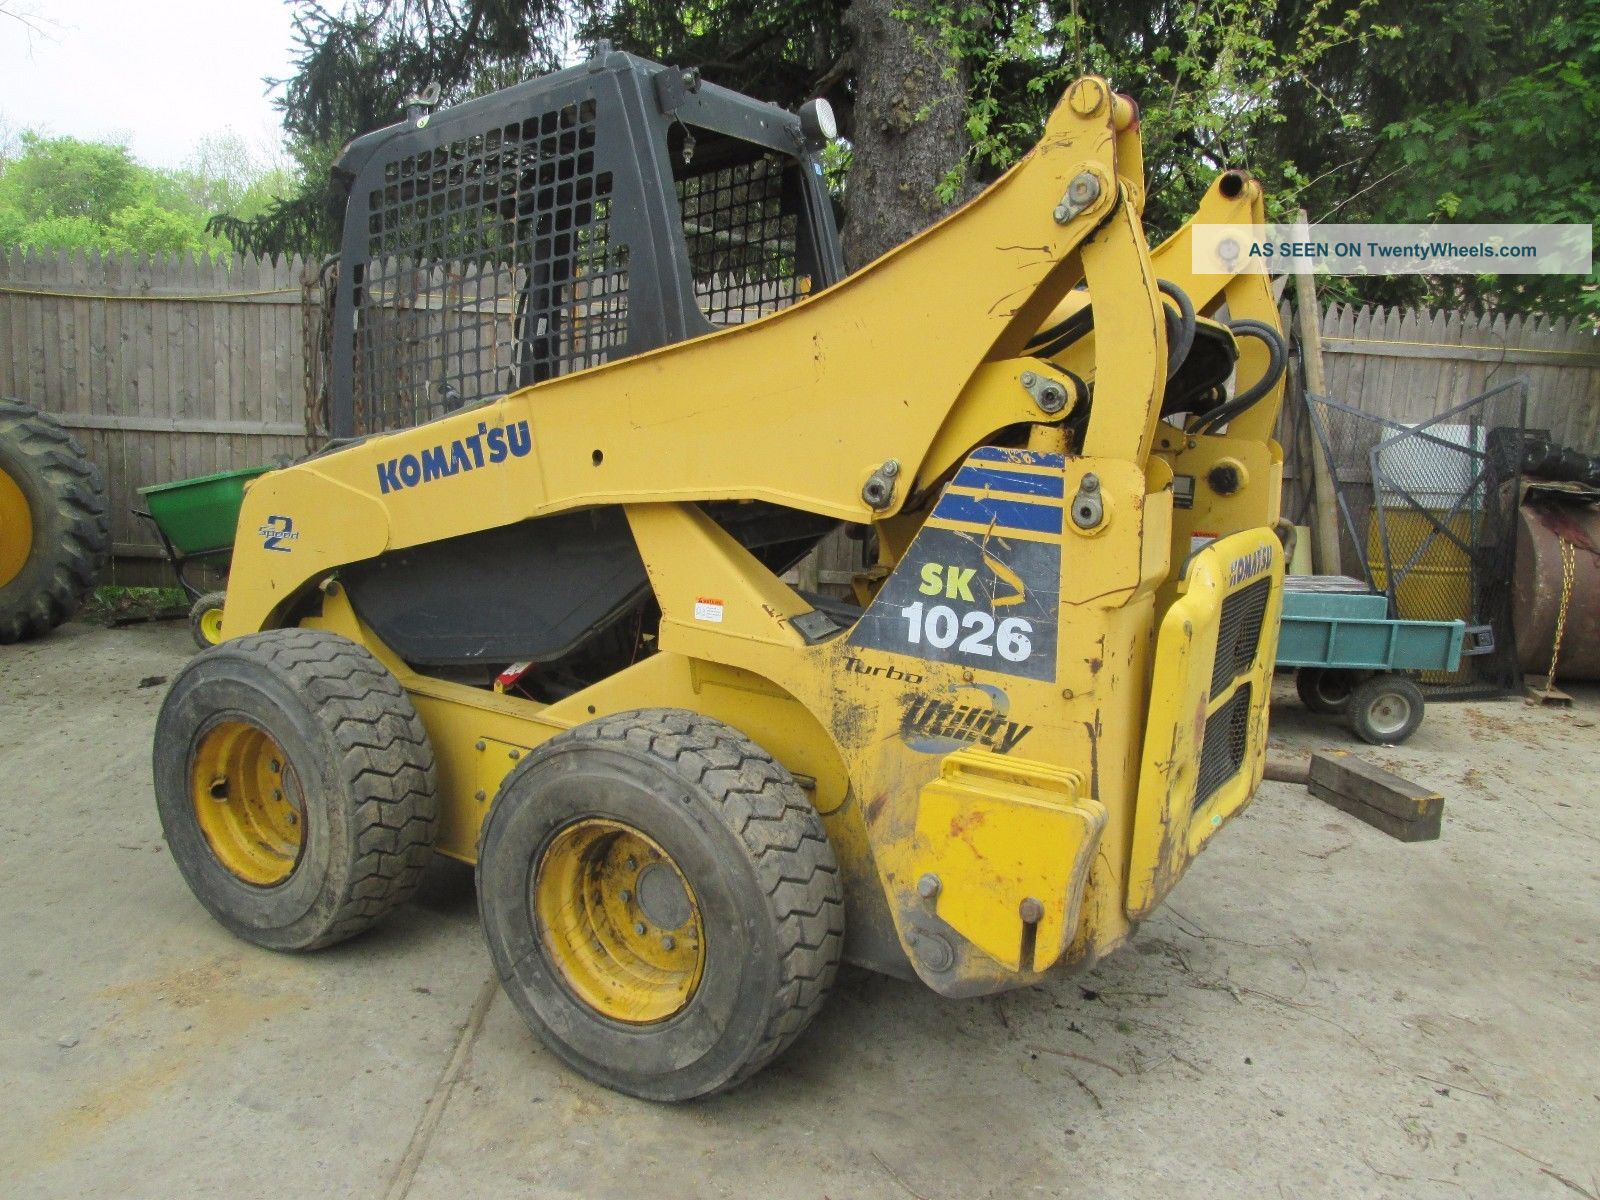 Komatsu Skid Steer Sk 1026 Skid Steer Loaders photo